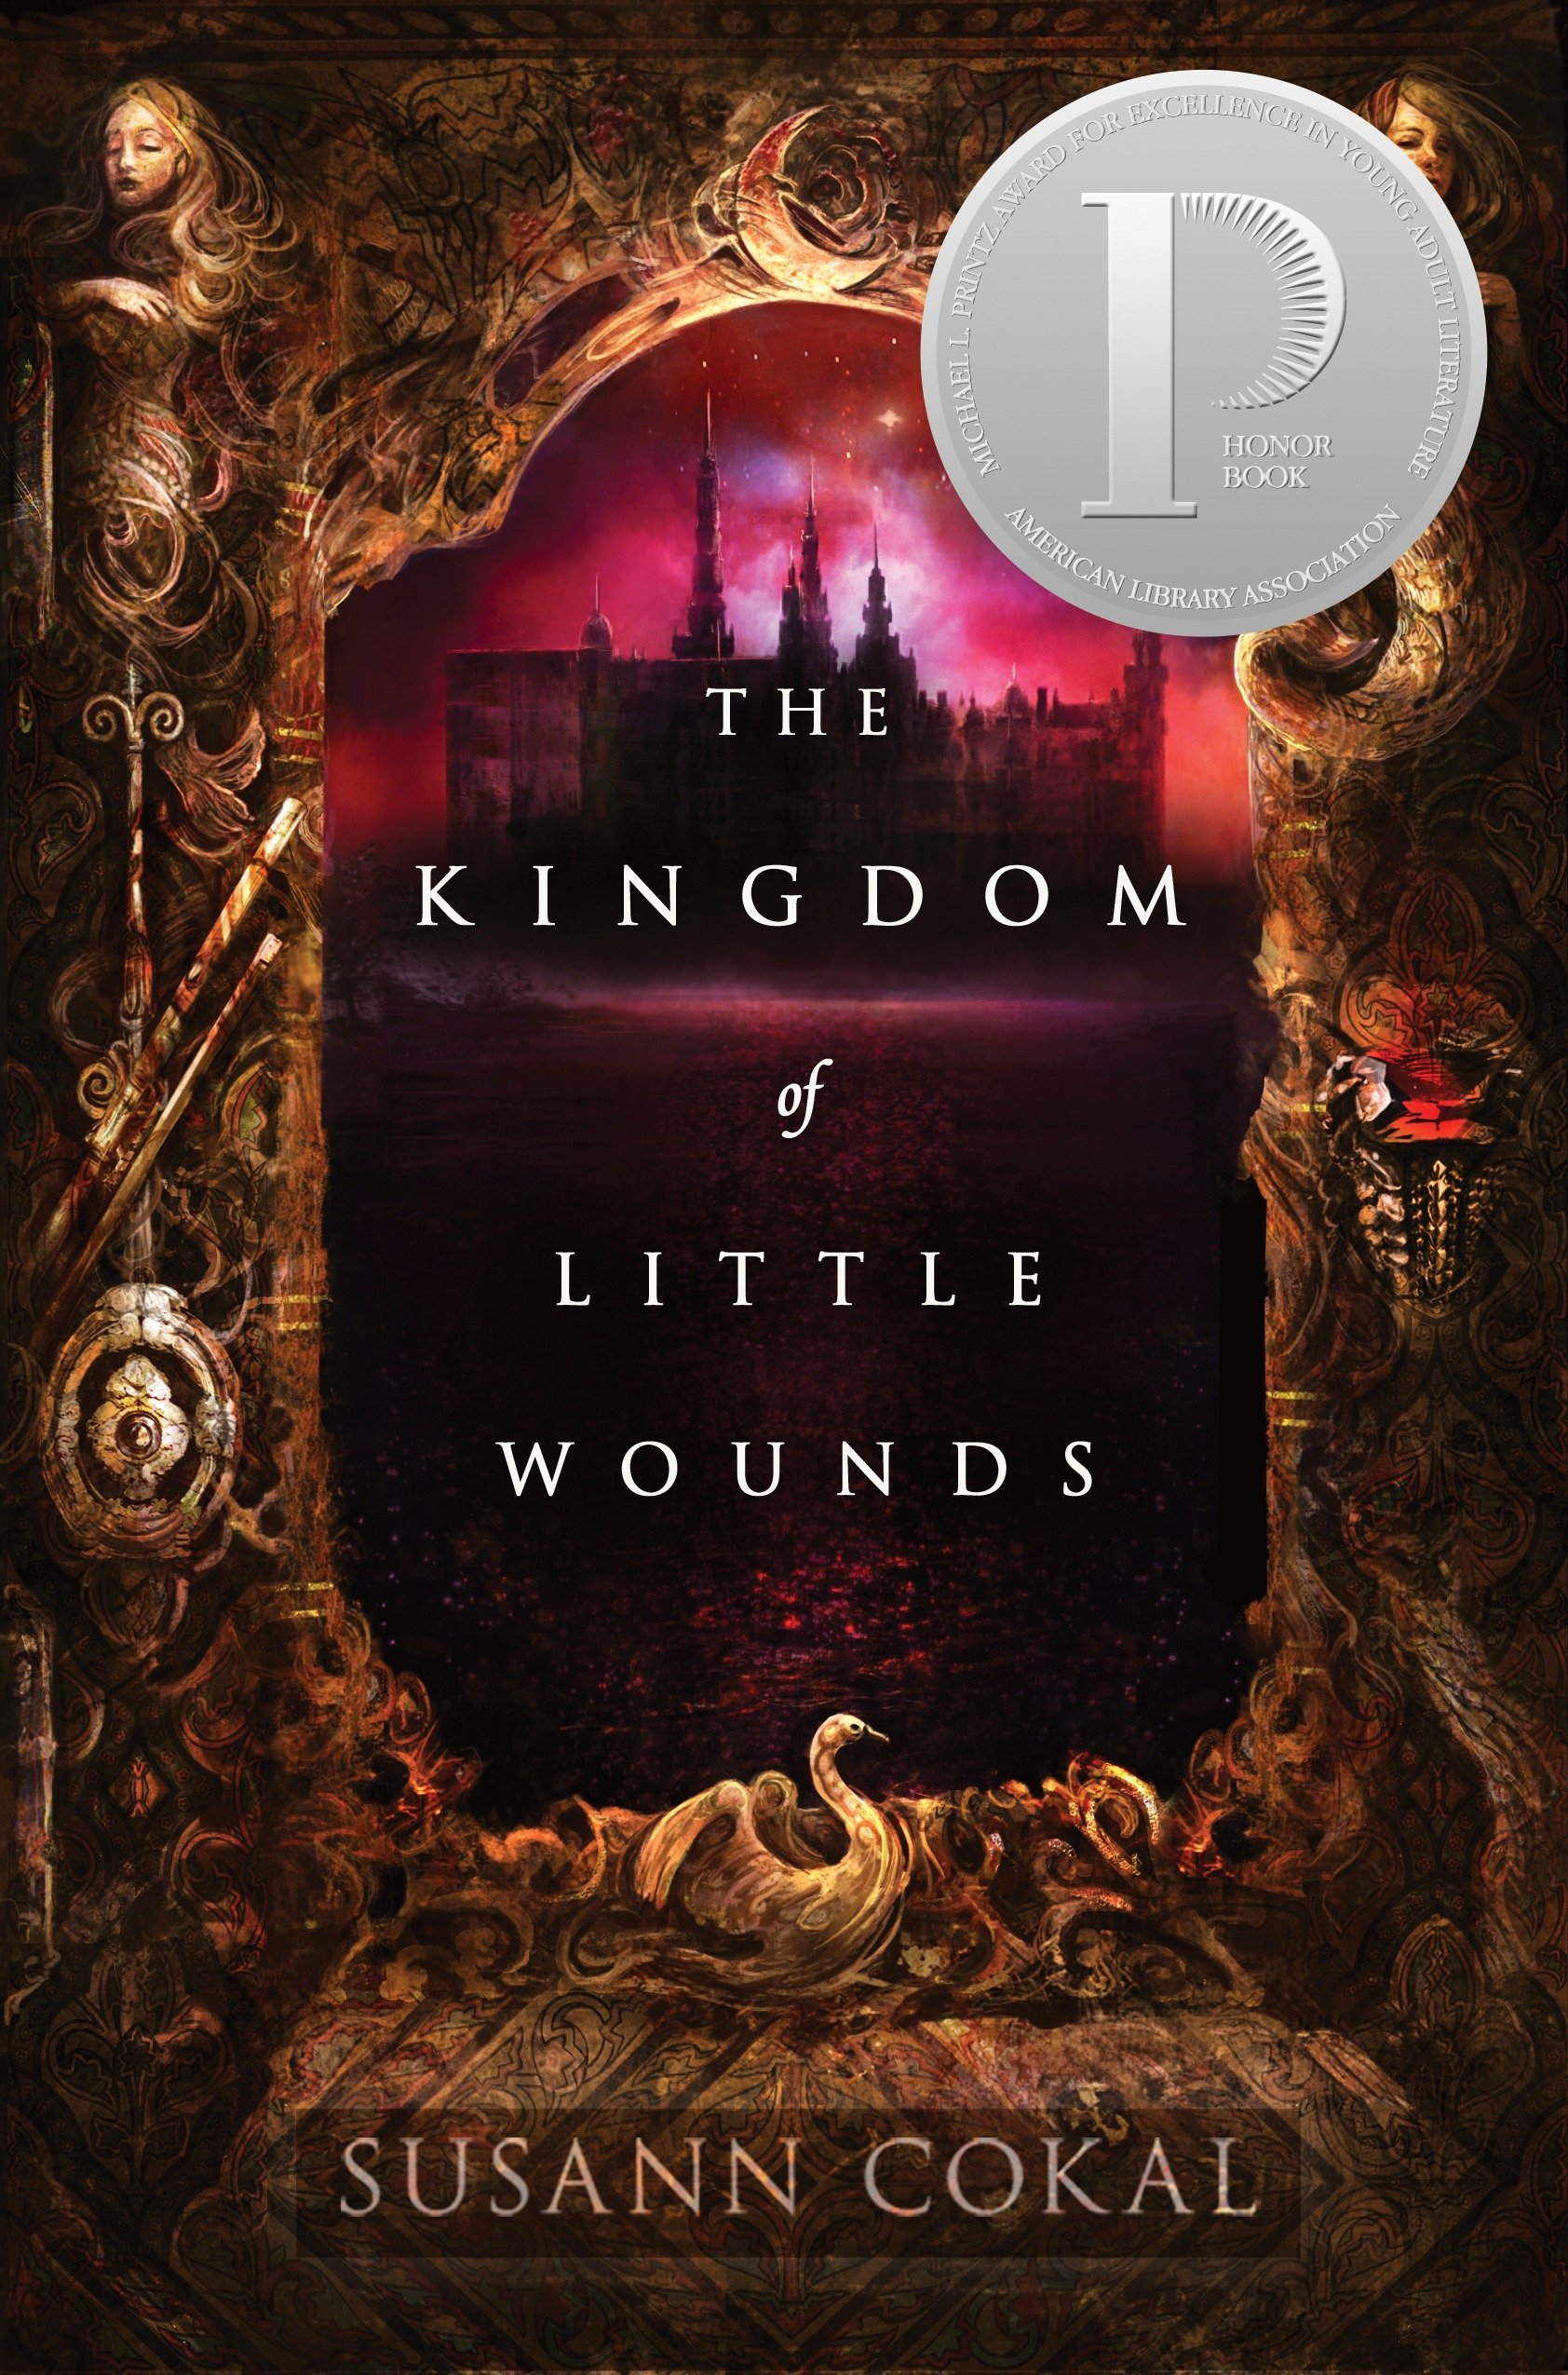 Amazon.com: The Kingdom of Little Wounds (9780763666941): Cokal ...